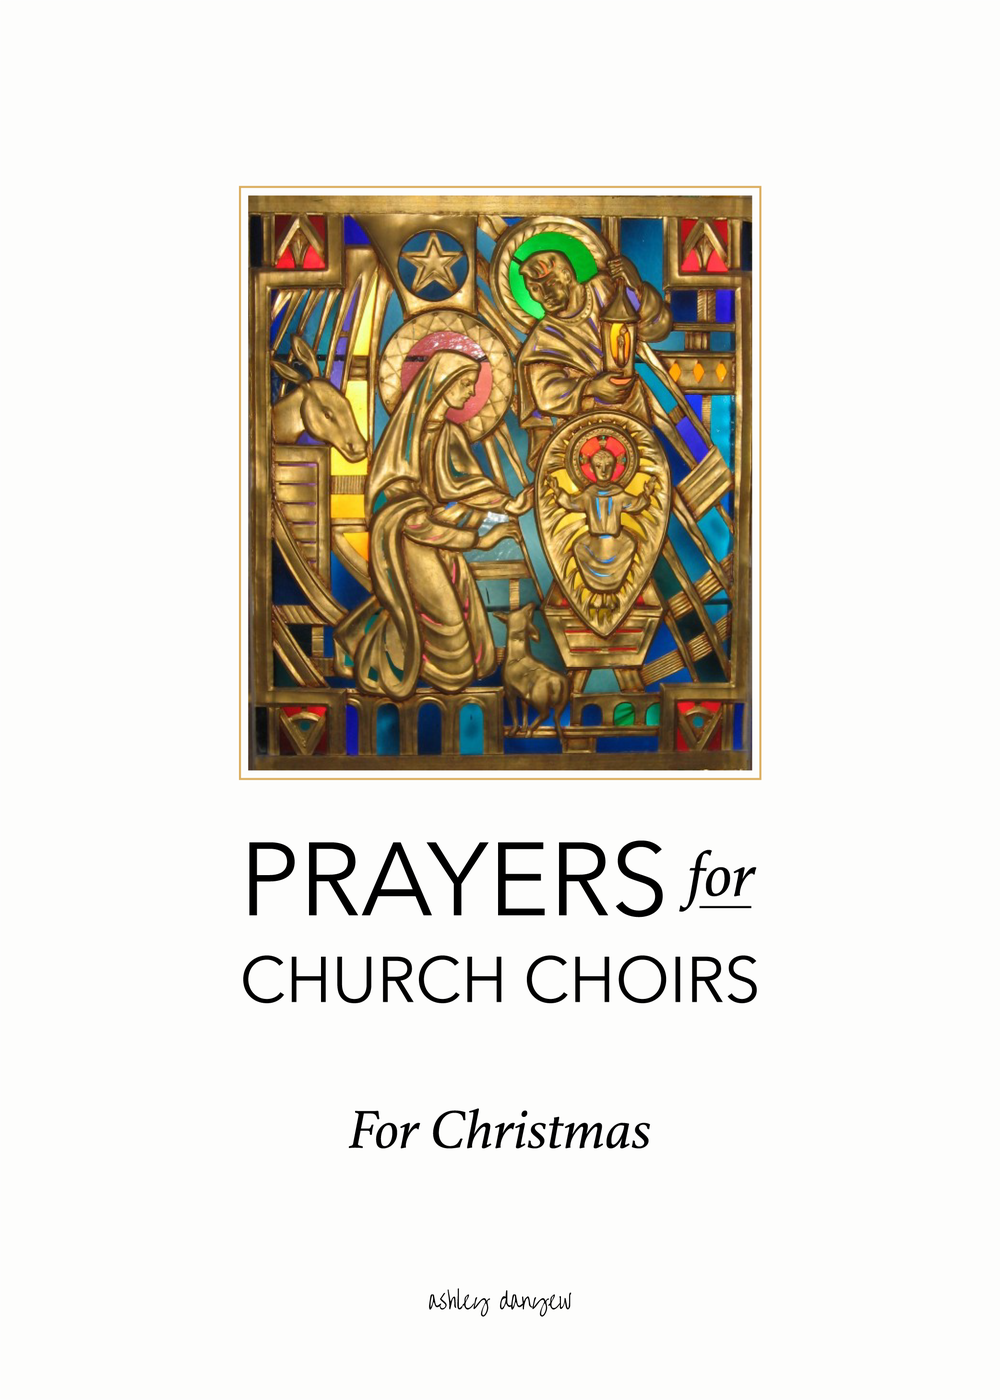 Prayers for Church Choirs: No. 12 - A short Christmas devotion and prayer for church choirs | @ashleydanyew